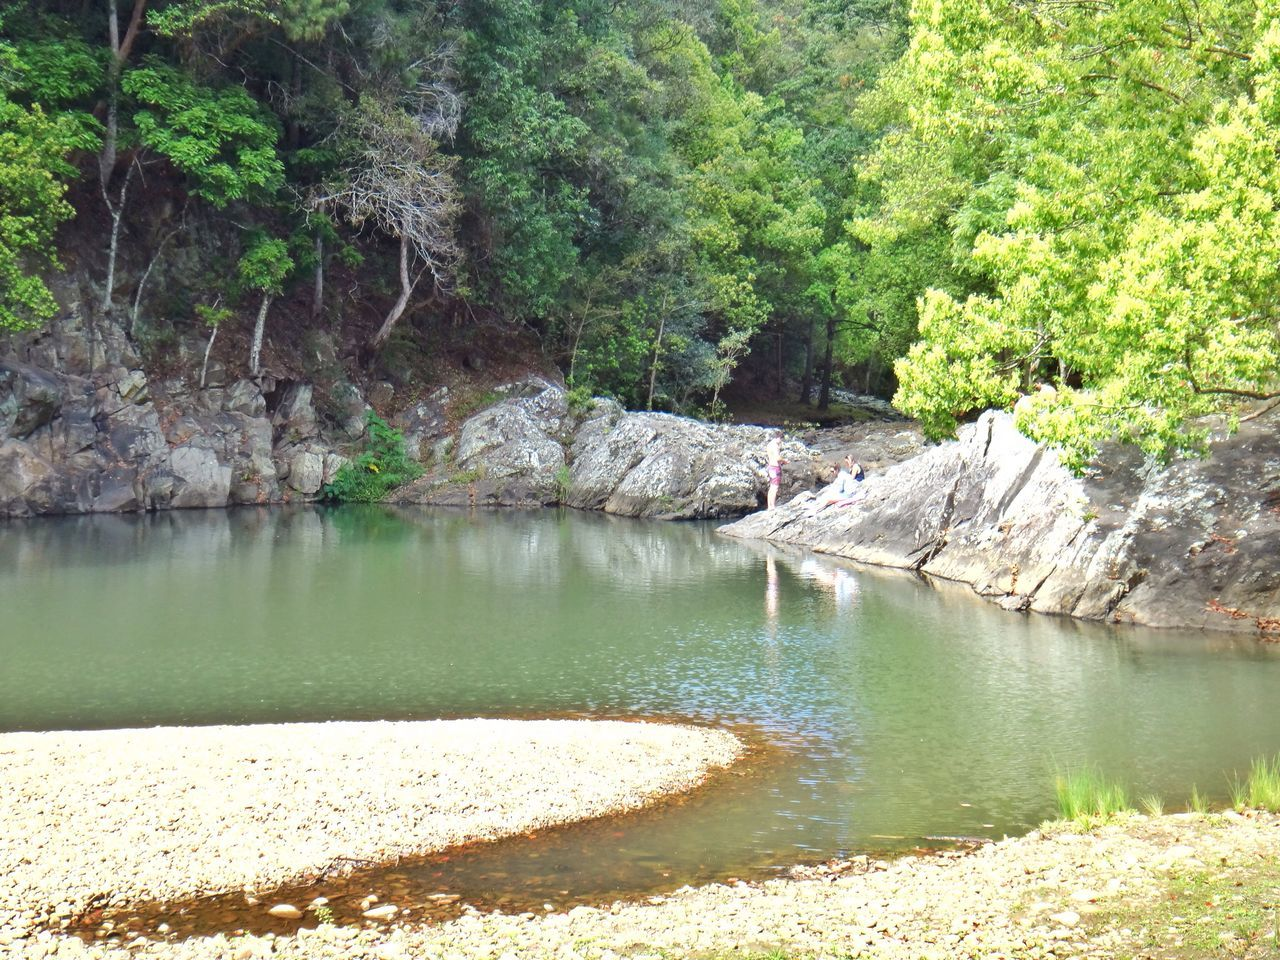 Rock pool - Gold Coast, Australia Rockpool Rock Rock Formation The KIOMI Collection Showcase April Tranquility Serenity The Rise Of Nature Nature Trees Landscapes Landscape Water Gold Coast Australia Australia The Great Outdoors With Adobe Nature's Diversities Colour Of Life